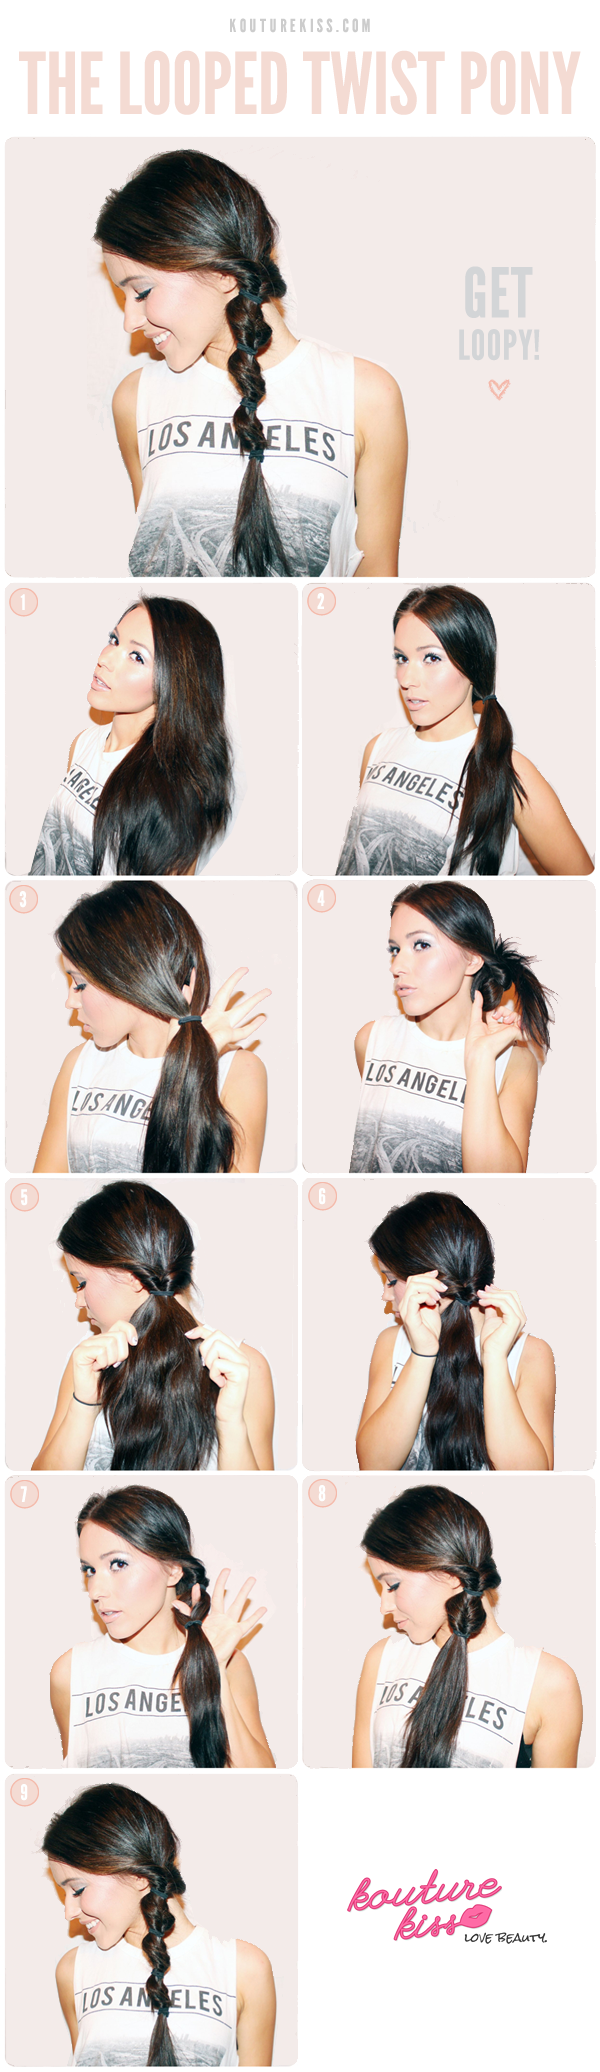 Diy looped twist pony pictures photos and images for facebook